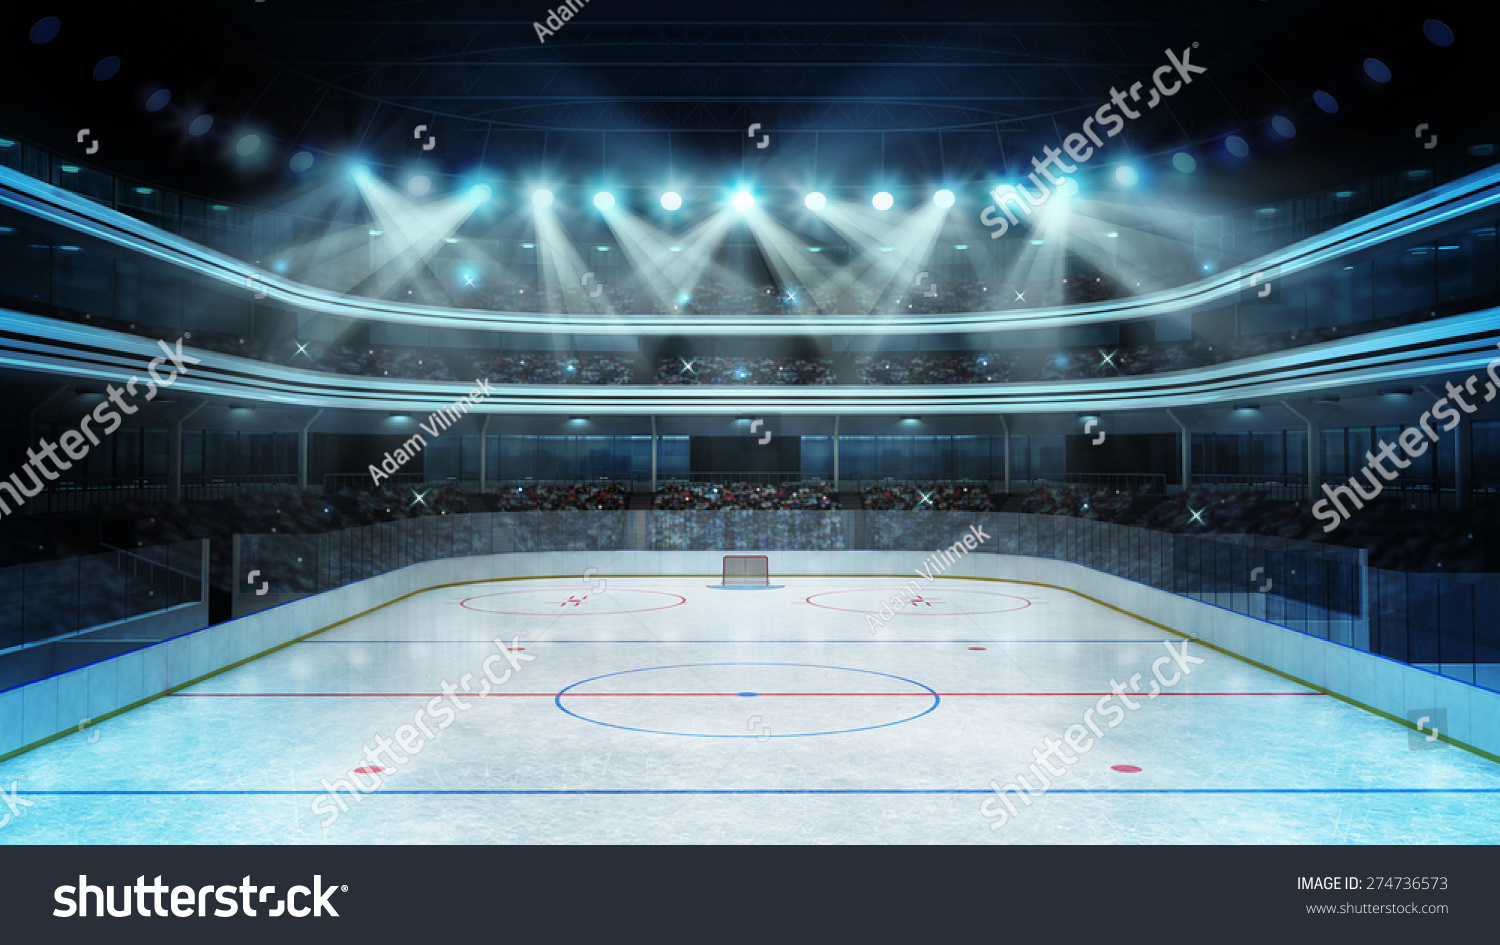 Hockey Rink Backgrounds hockey stock photos, images, u0026 pictures ...